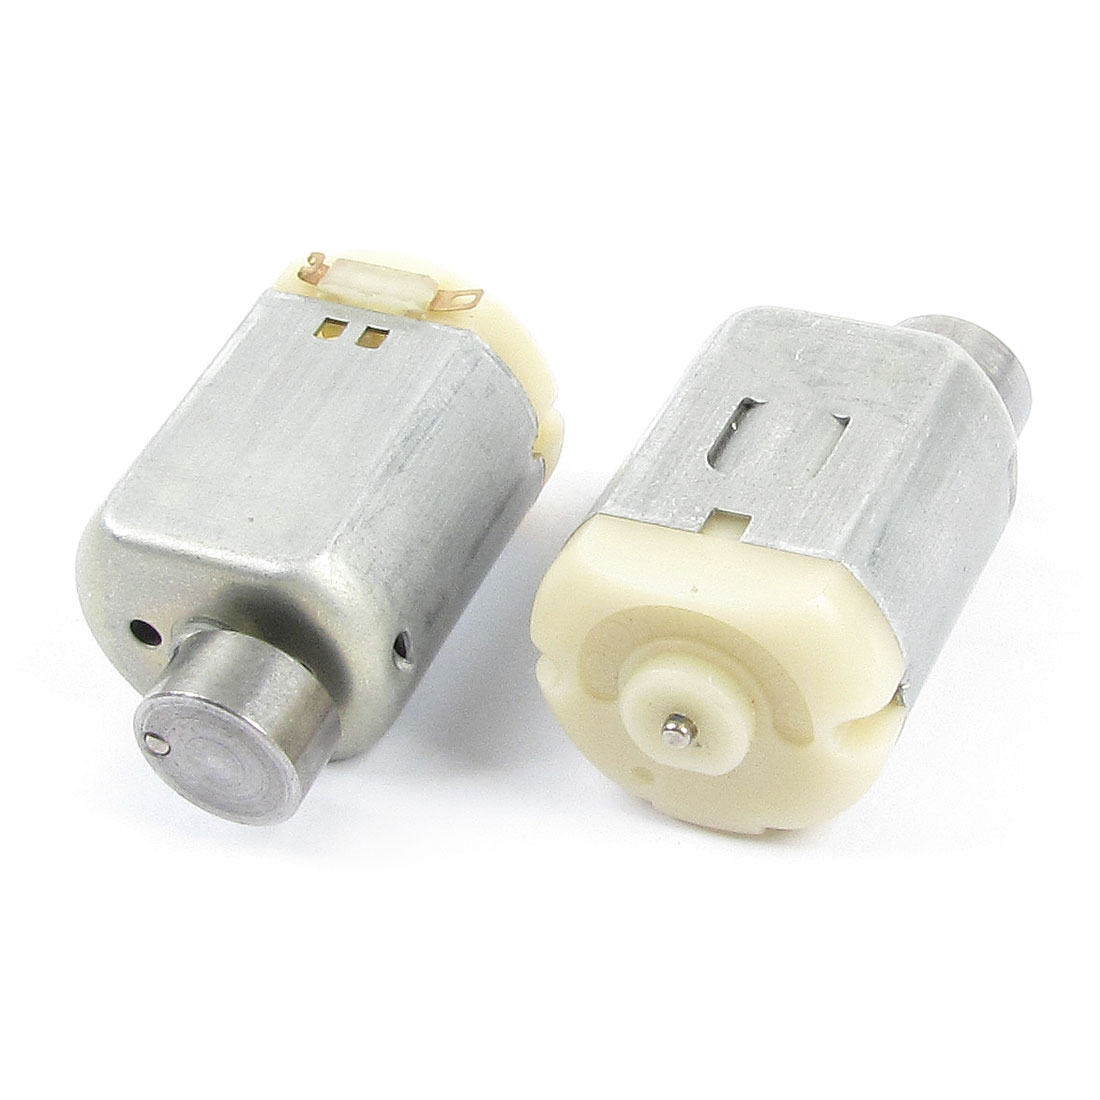 2pcs Magnetic Vibrating Vibration Micro Motor 17500RPM 6VDC